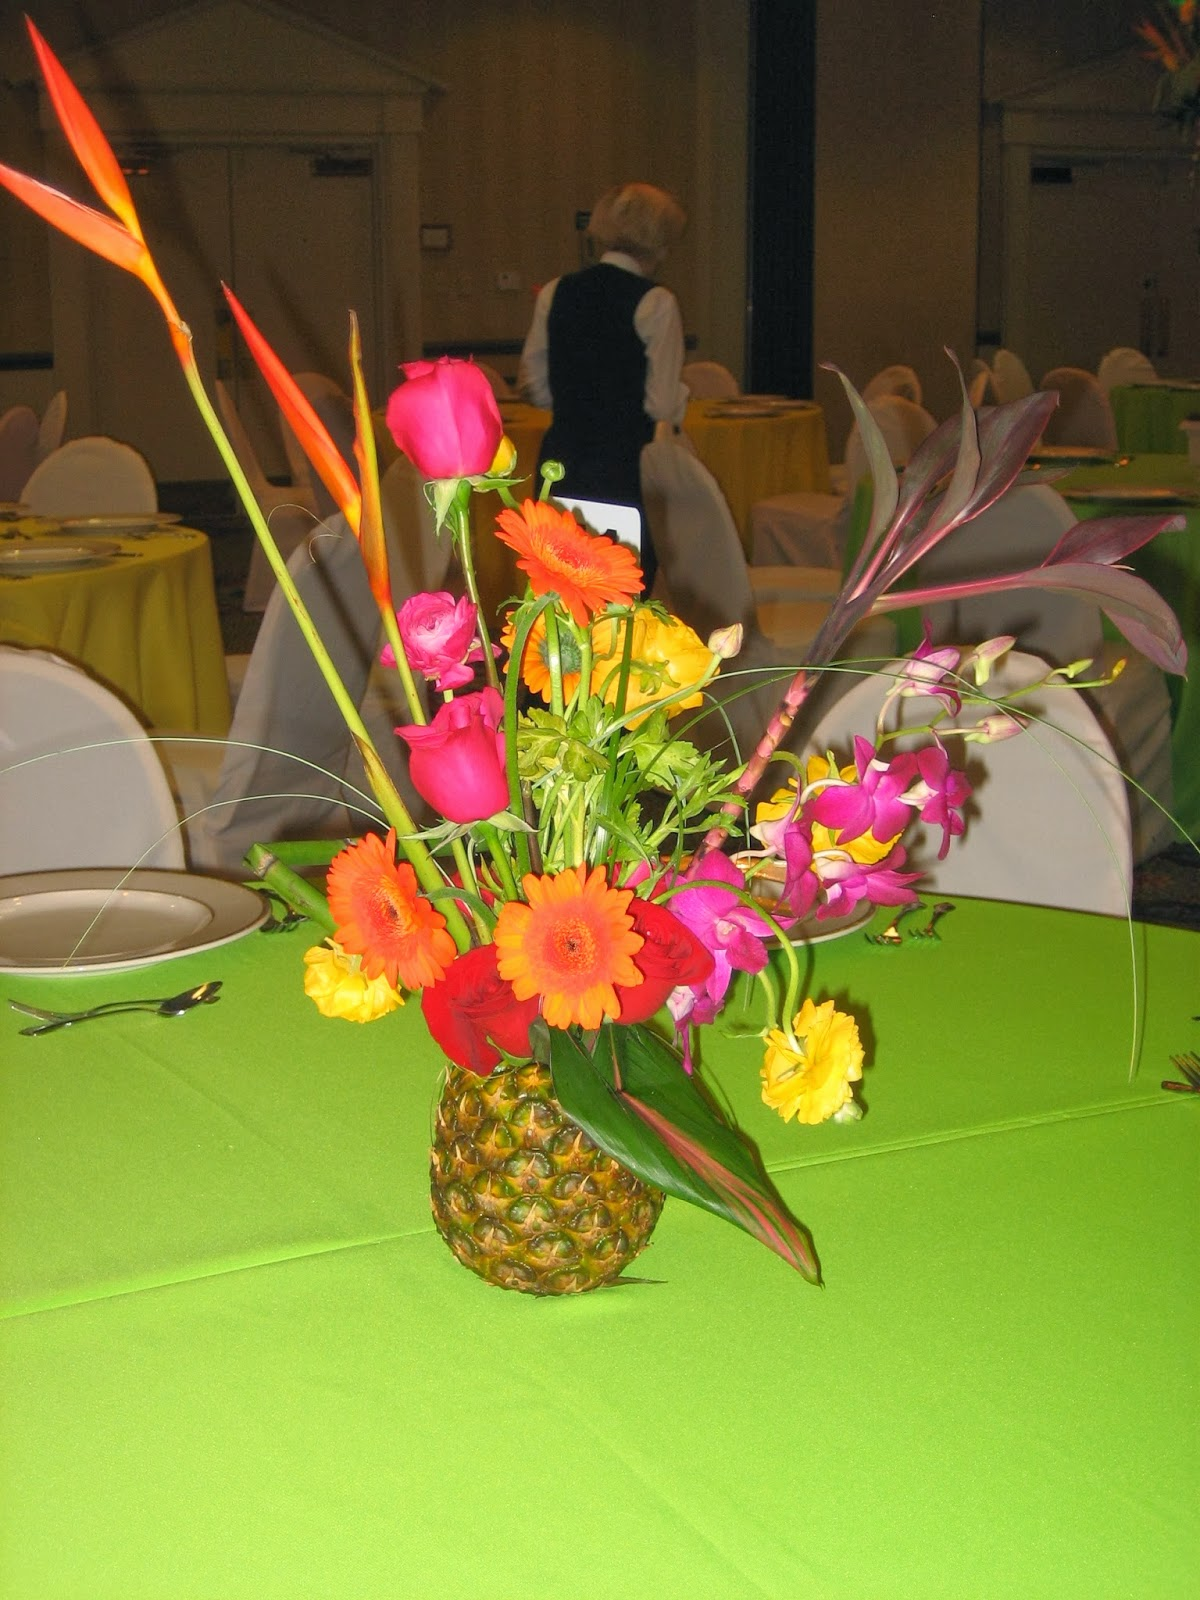 MyTotalNetcom Centerpieces With Pineapple Part 3